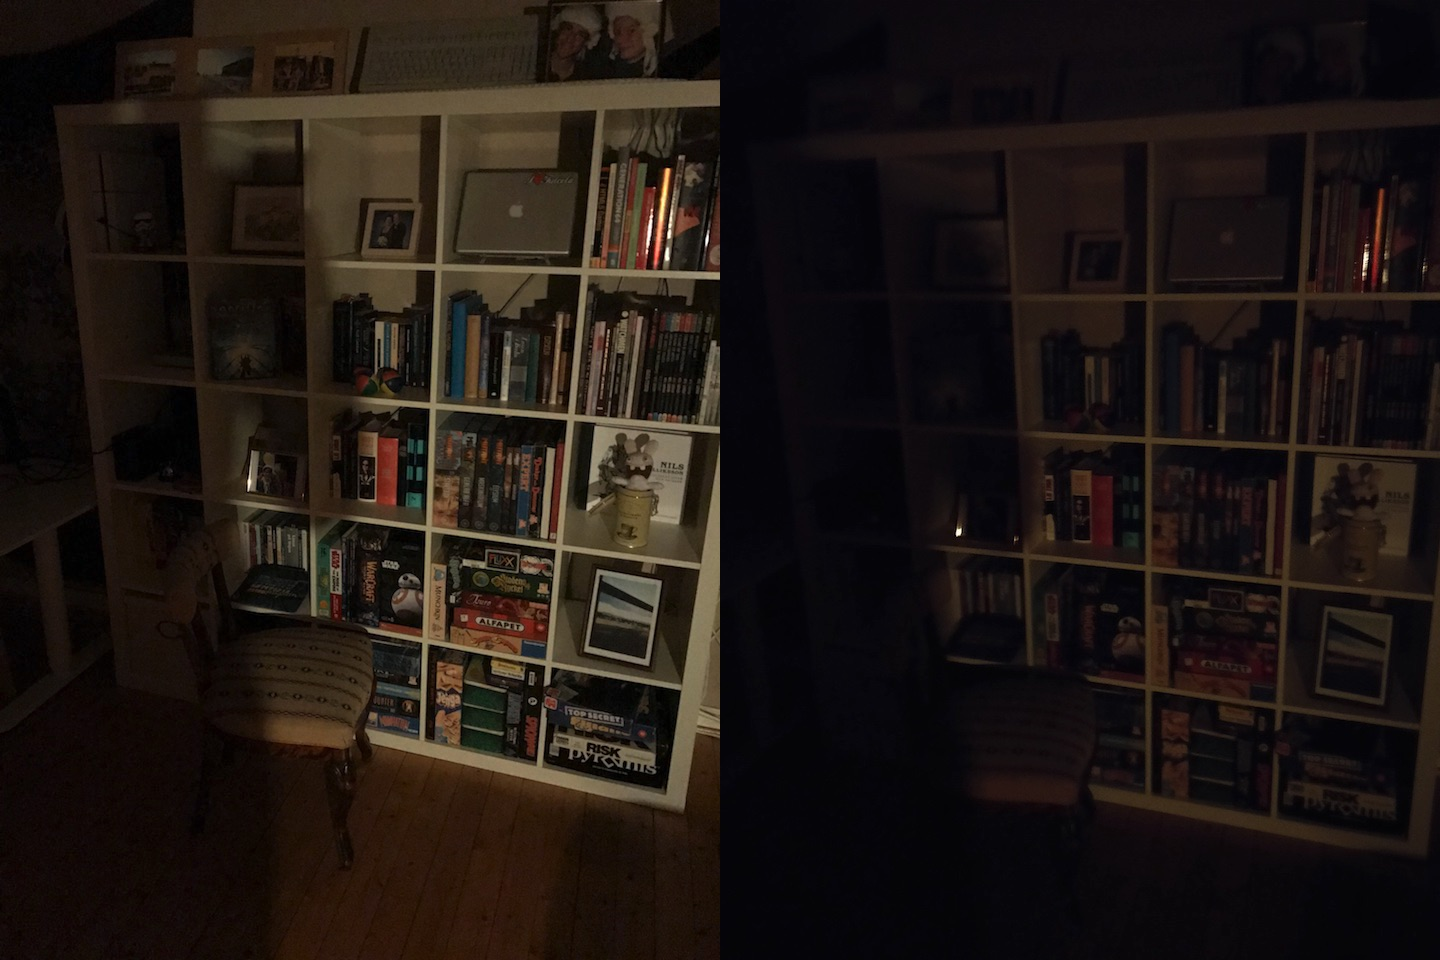 Book case in low light